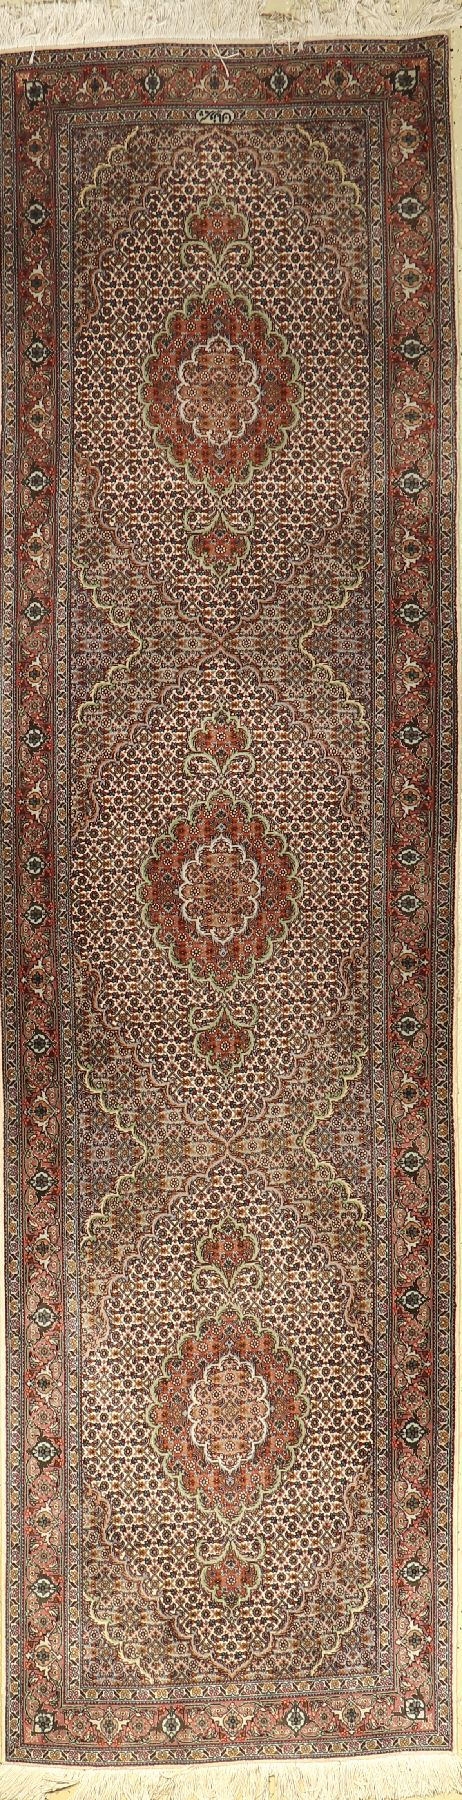 Tabriz fine runner, Persia, approx. 30 years, wool with silk, approx. 300 x 81 cm, condition: 2.